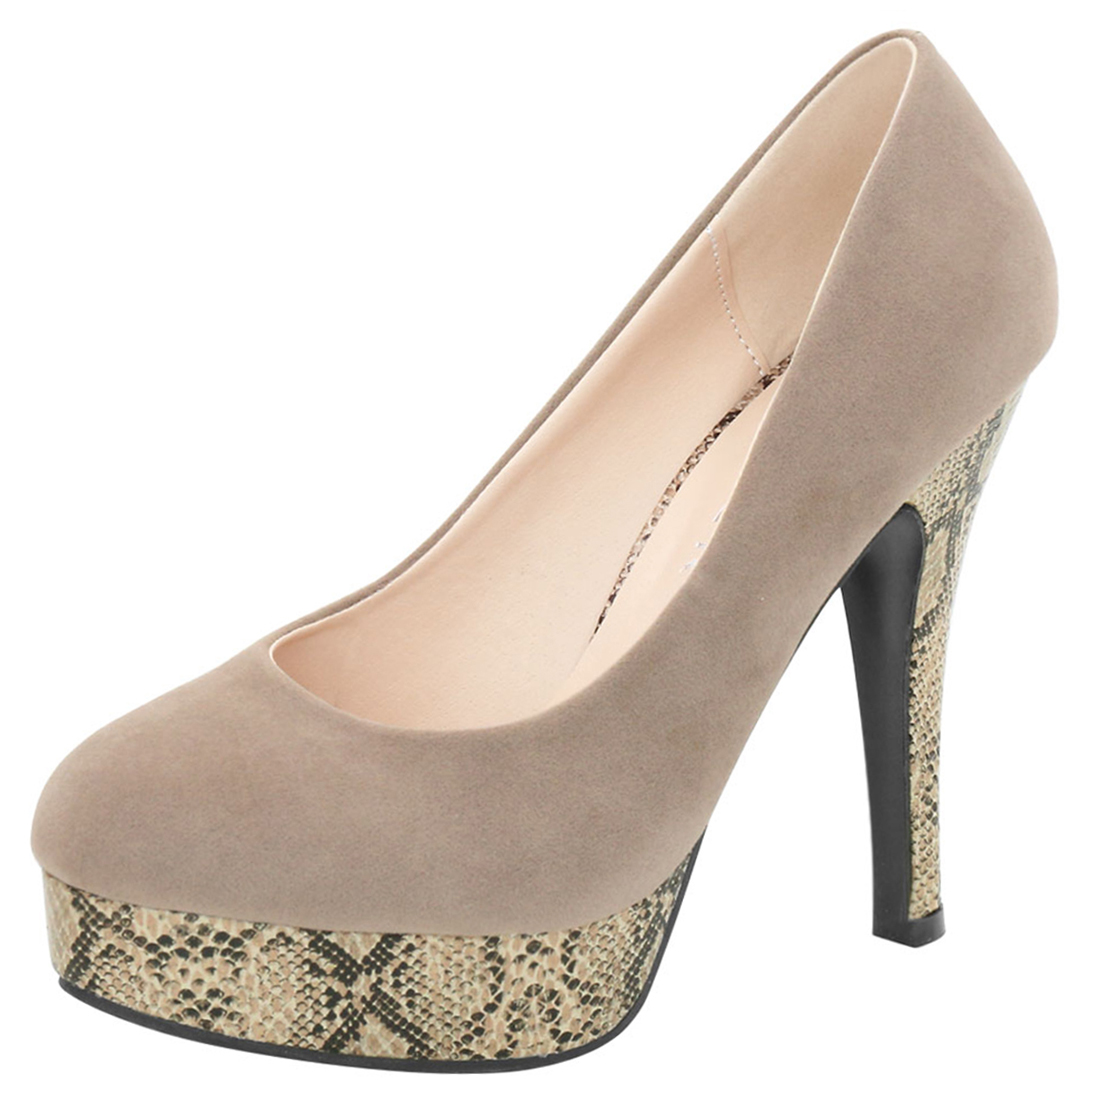 Woman Rounded Toe Snake Effect Stiletto Platform Pumps Taupe US 9